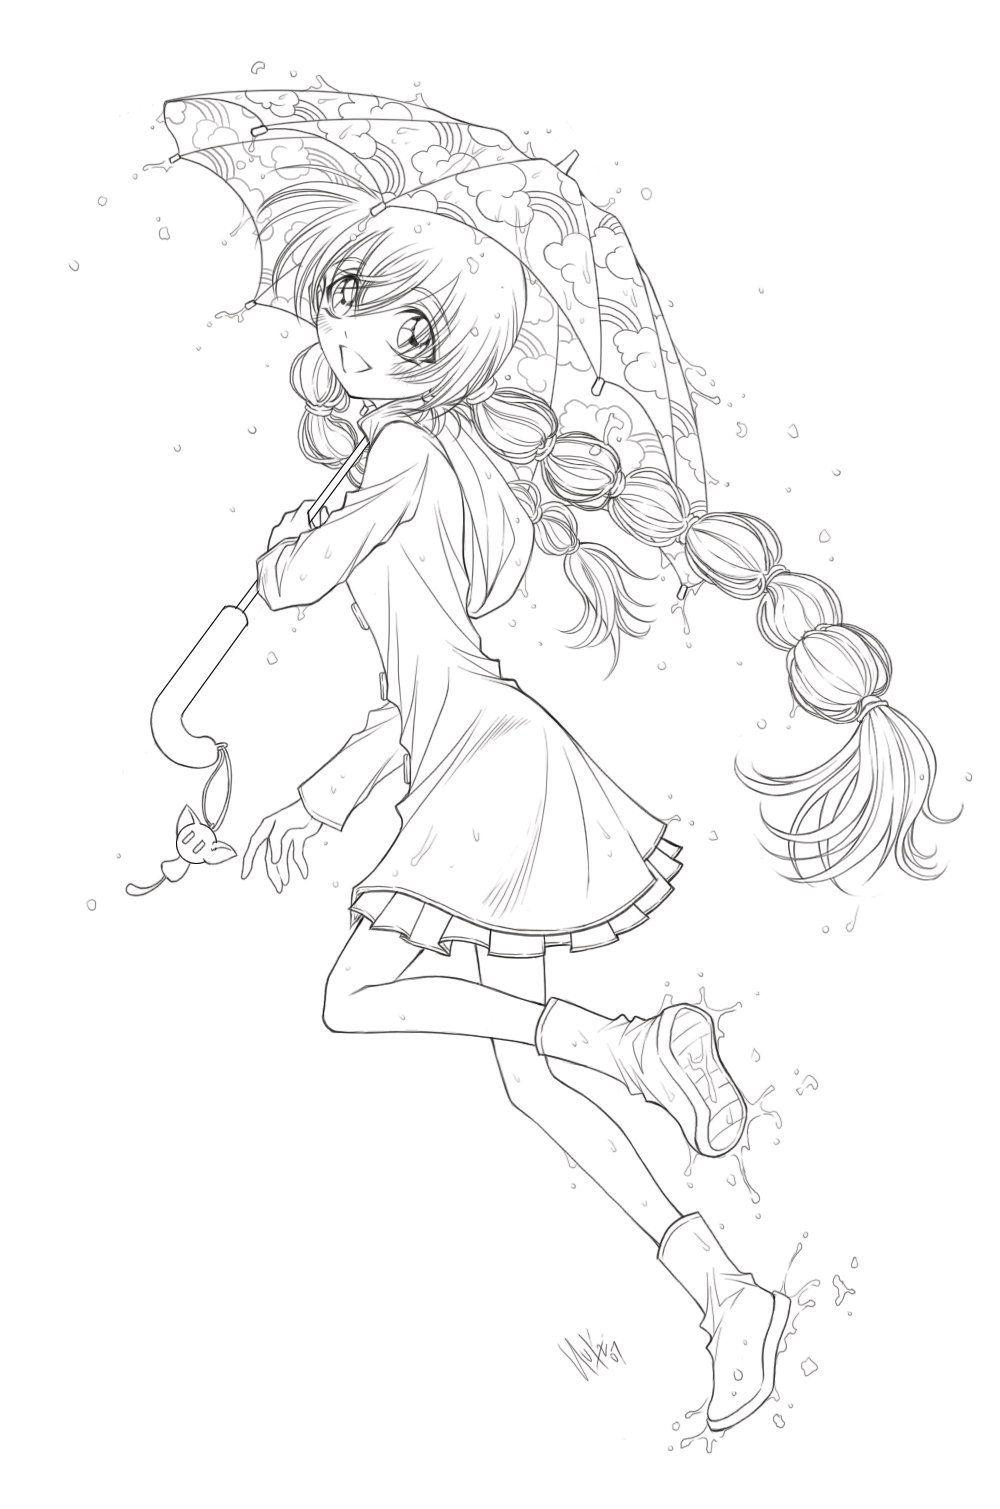 Umbrella Girl Lineart Coloring Pages Coloring Books Cute Coloring Pages [ 1509 x 1000 Pixel ]